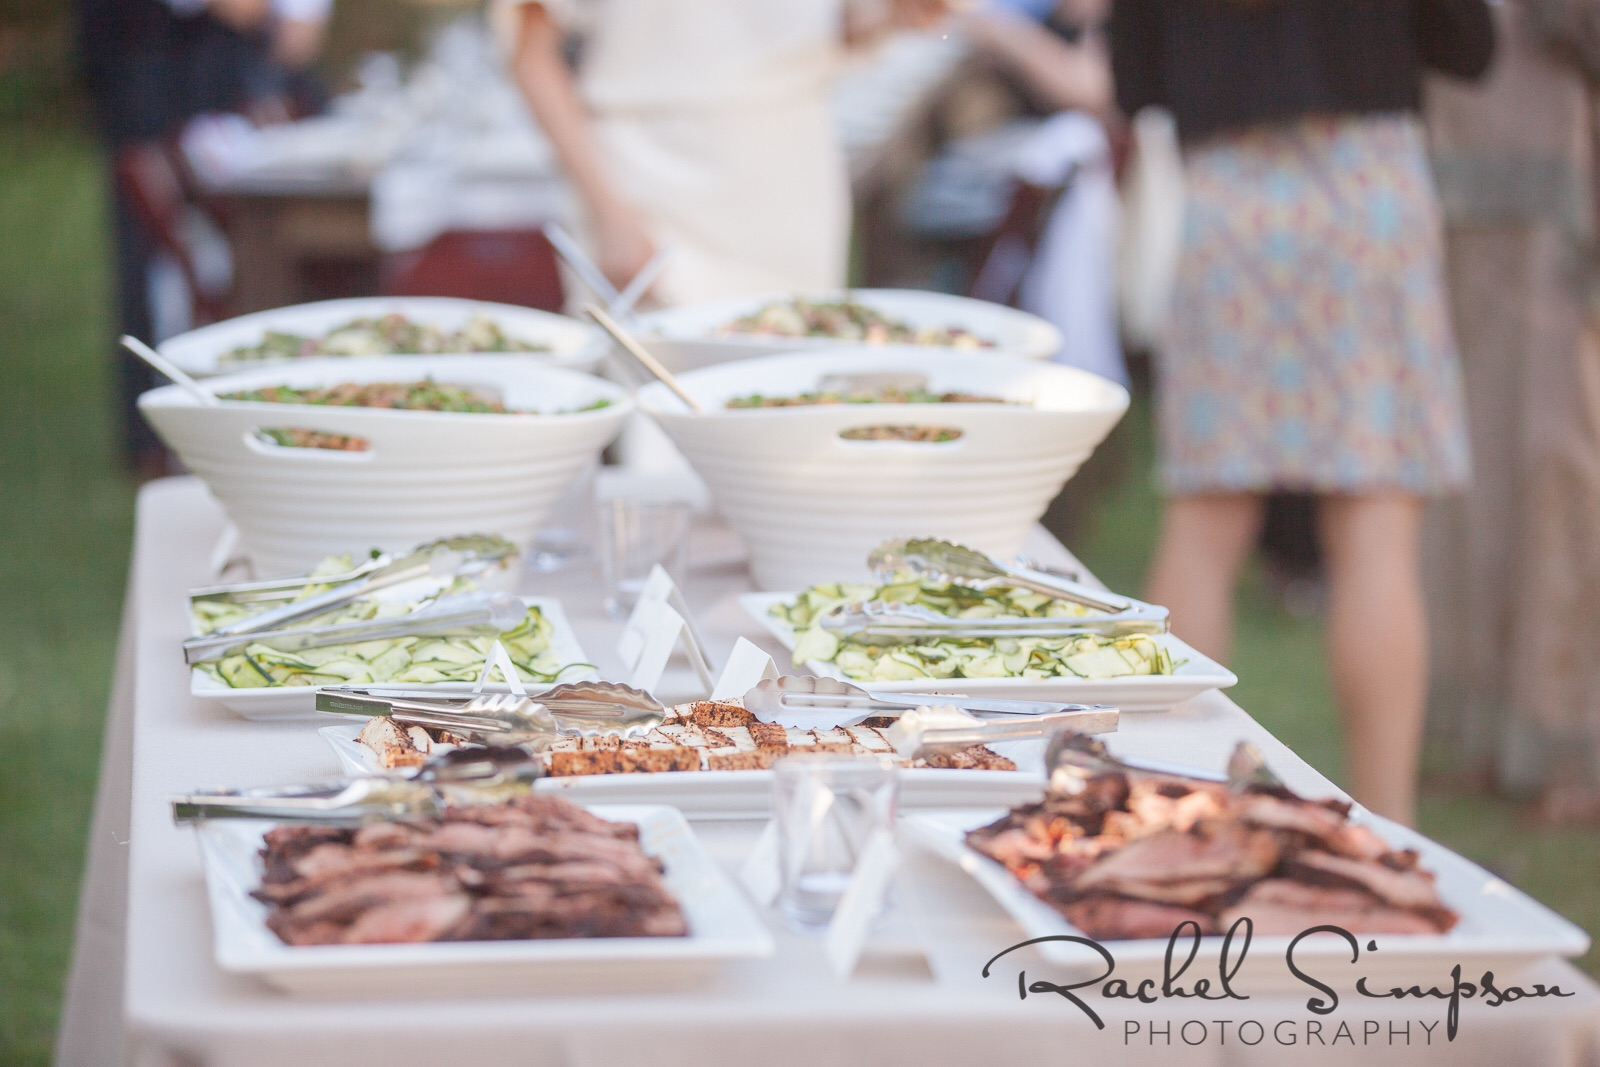 The buffet - all food was made or prepared by the bride.